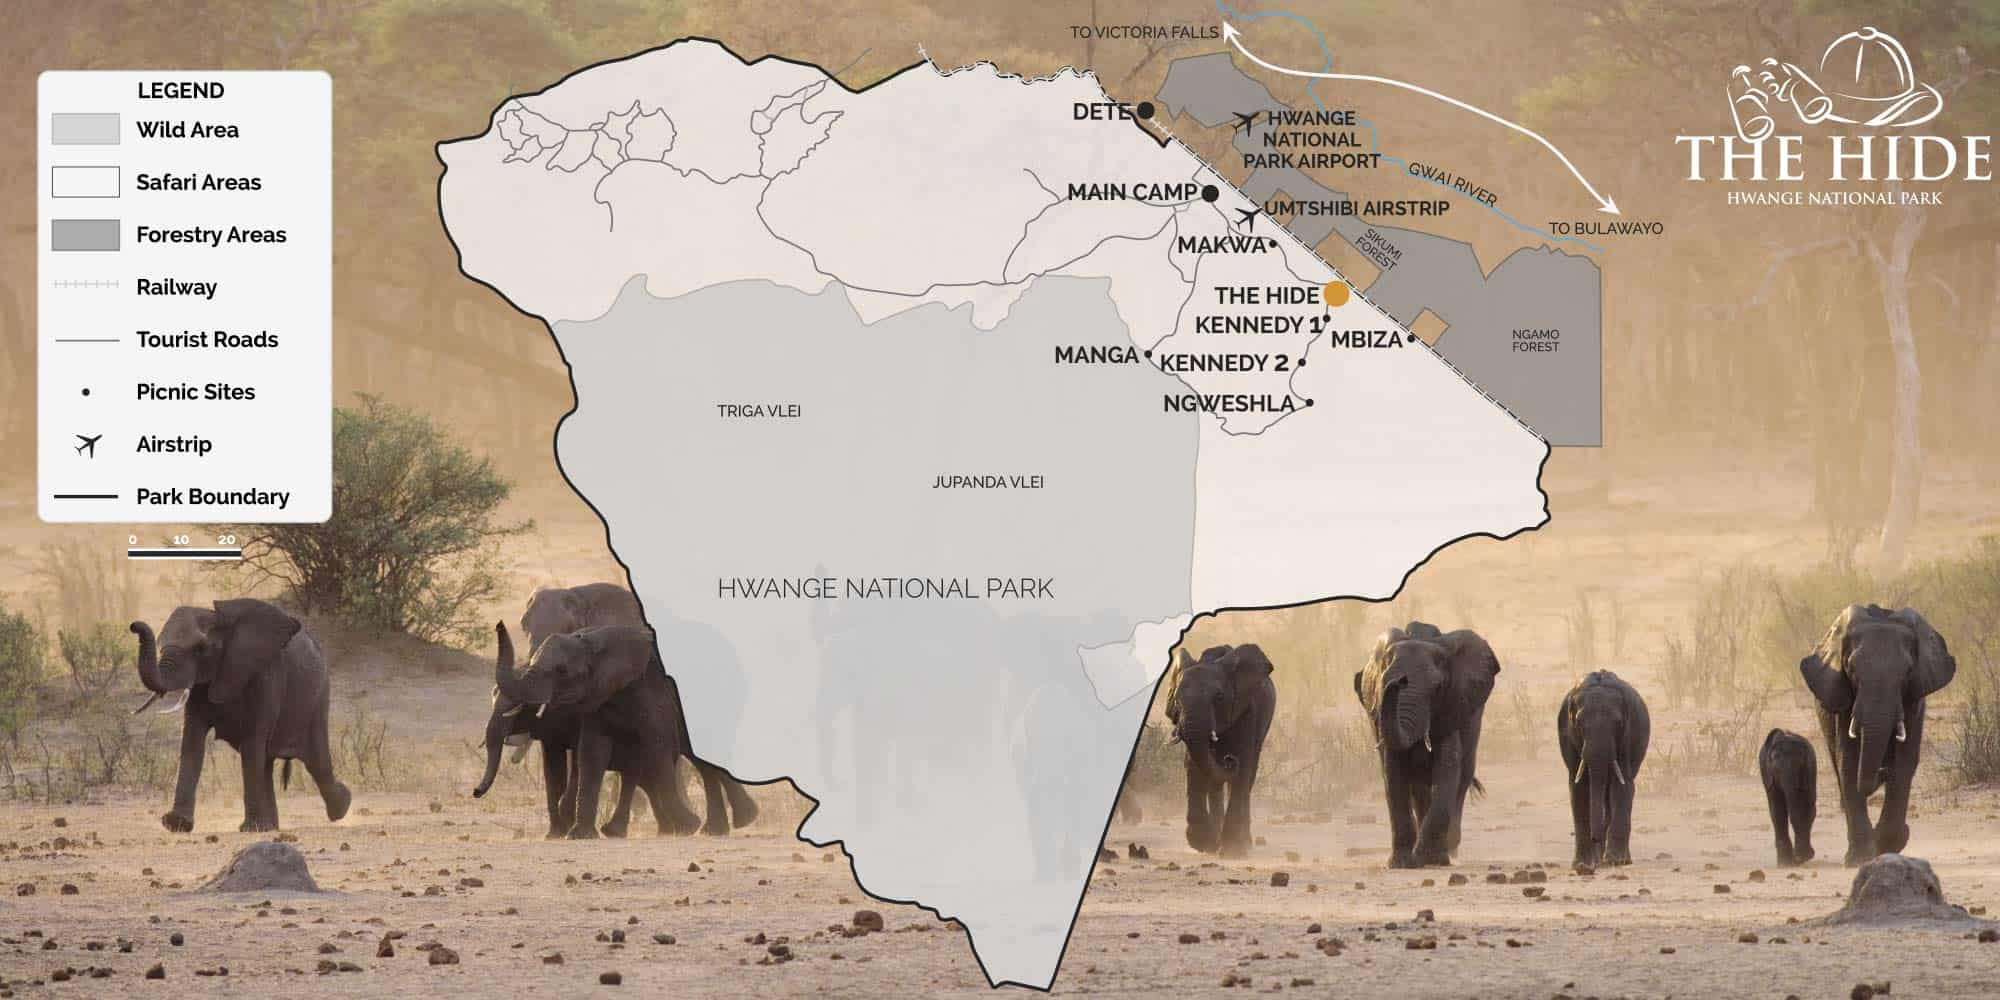 Hwange National Park Map The Hide